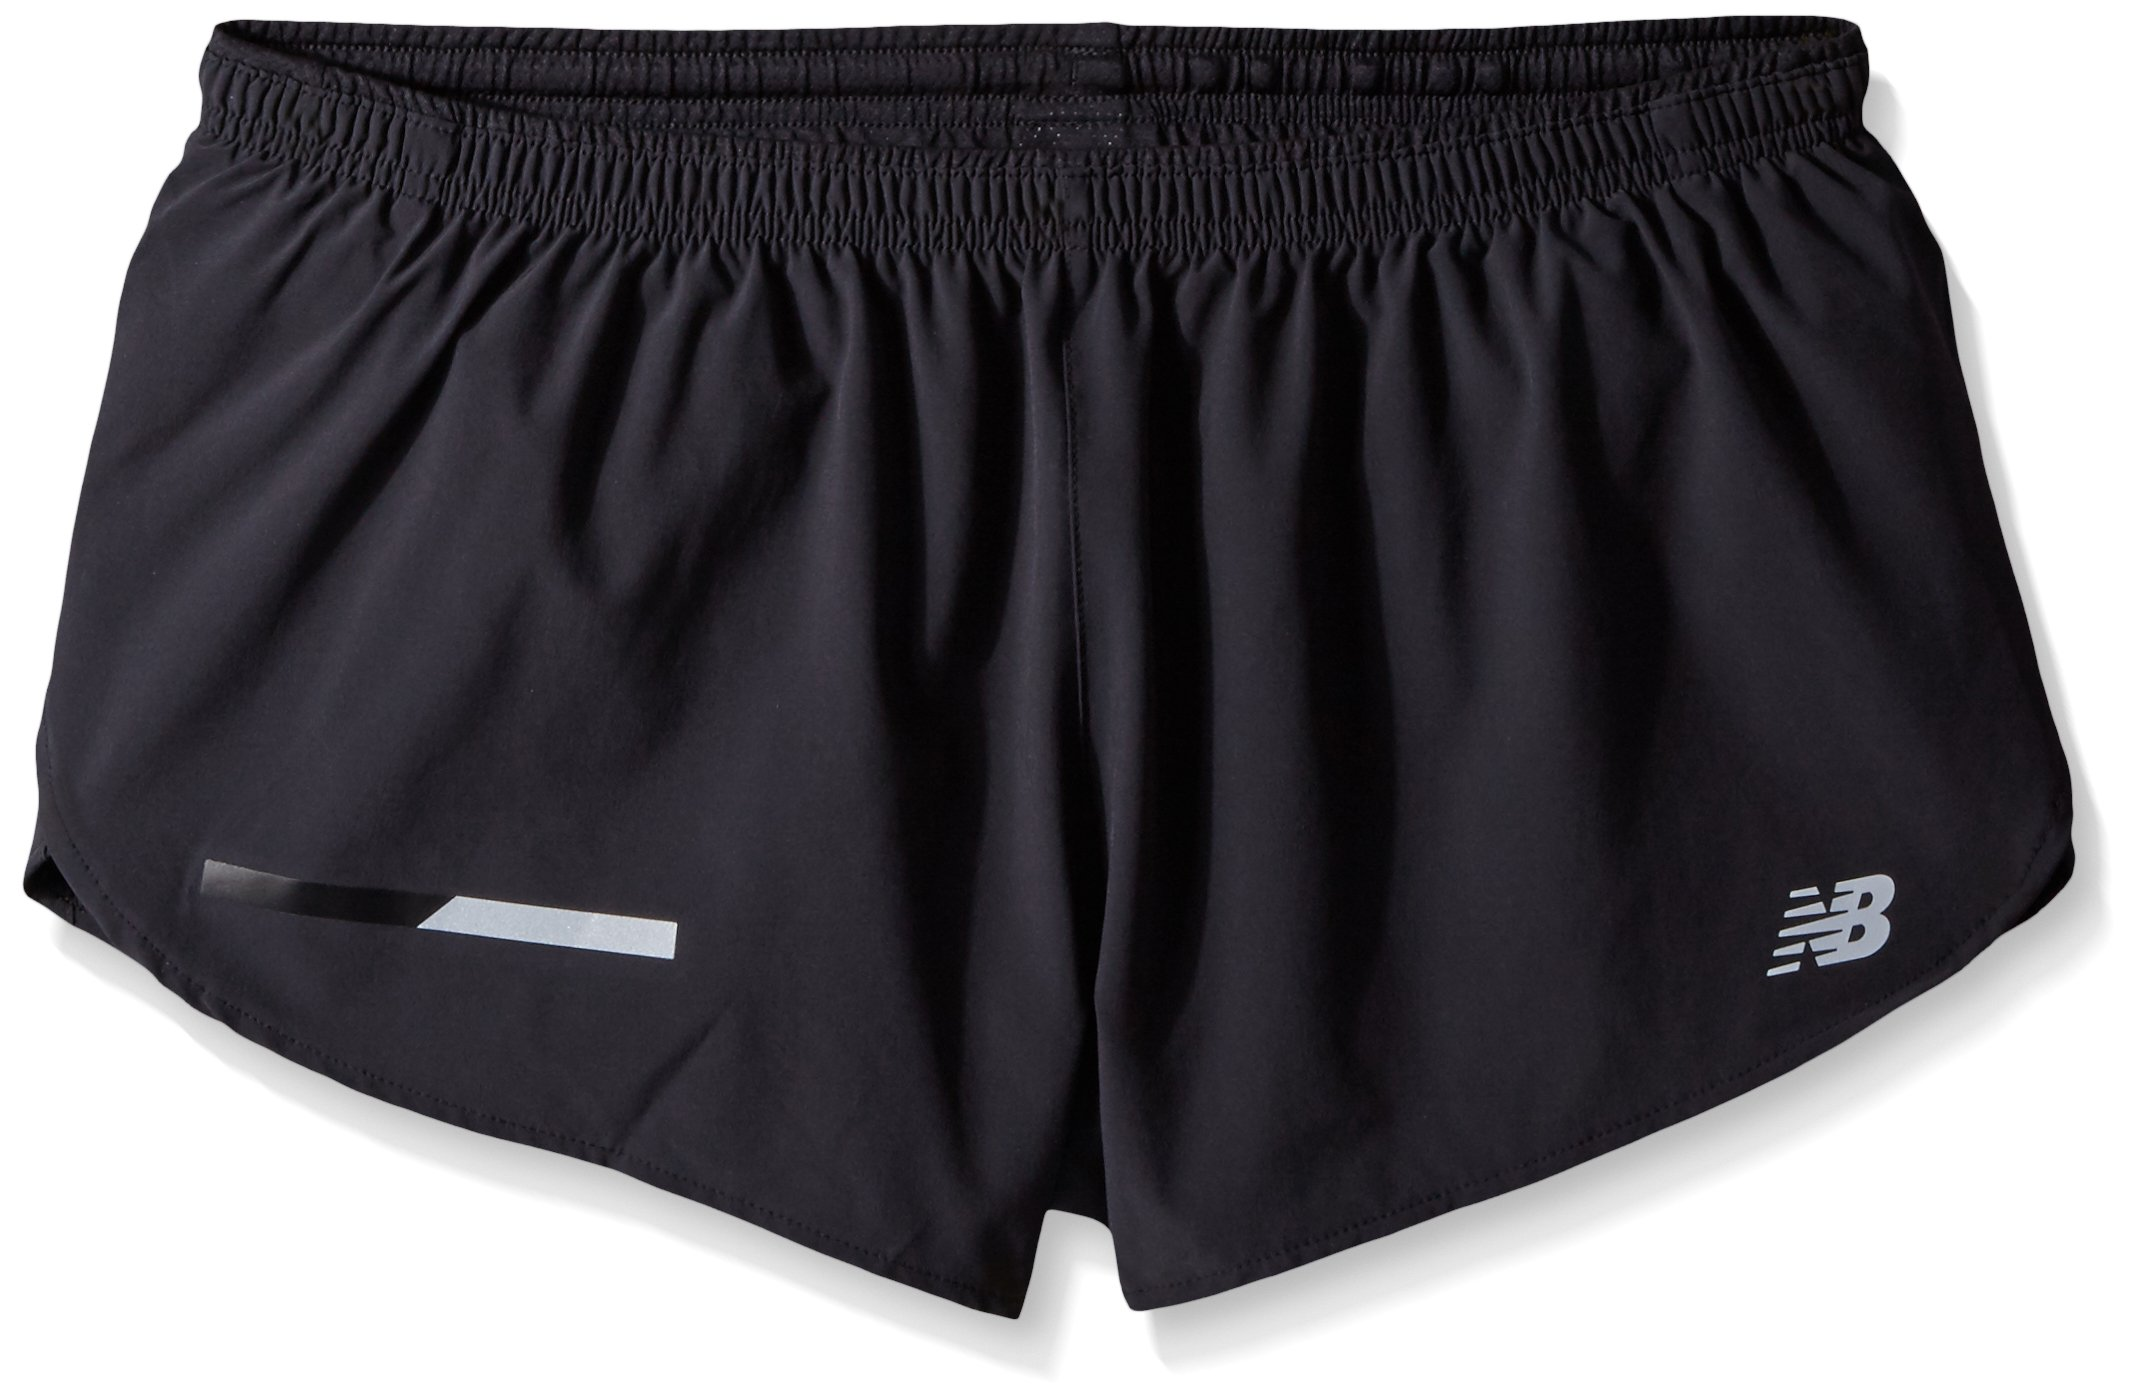 New Balance Impact Split Short 3in, Black, Small by New Balance (Image #1)